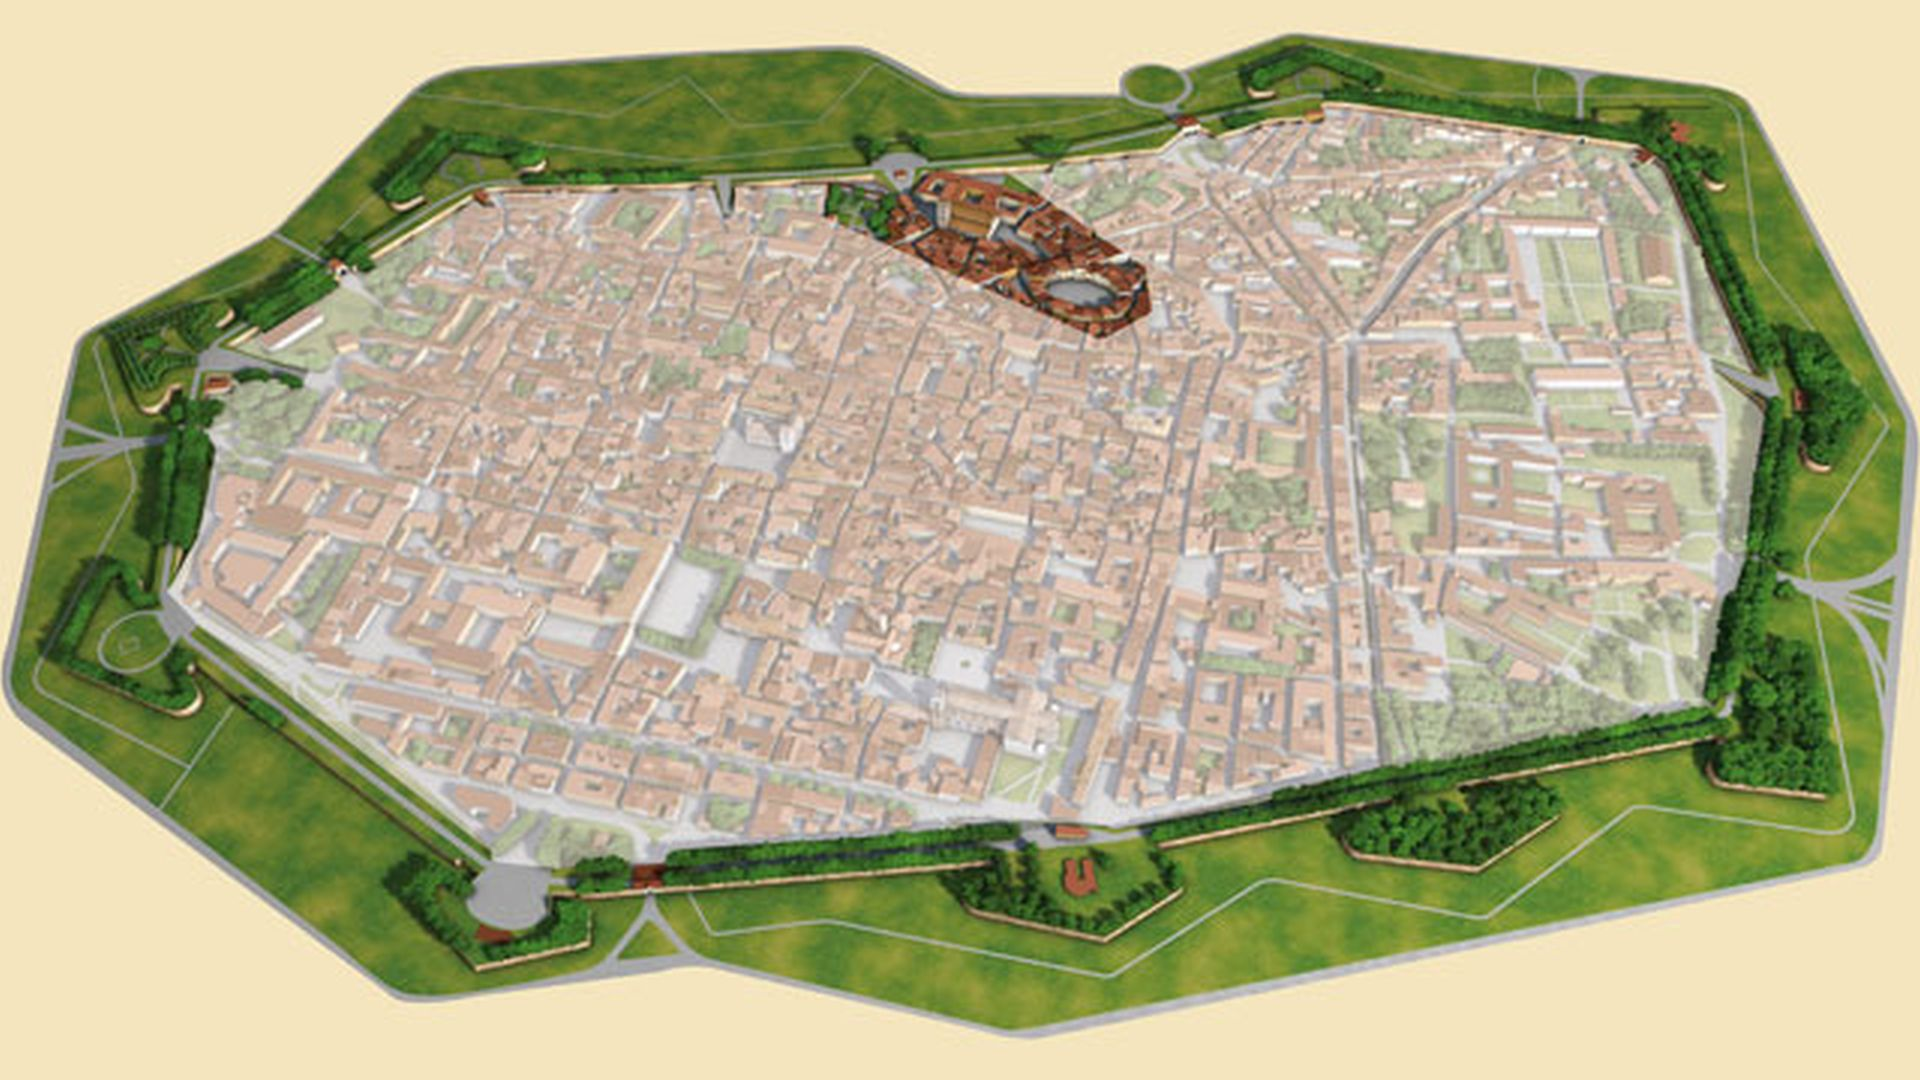 Map of Lucca with spotlight on the northern area